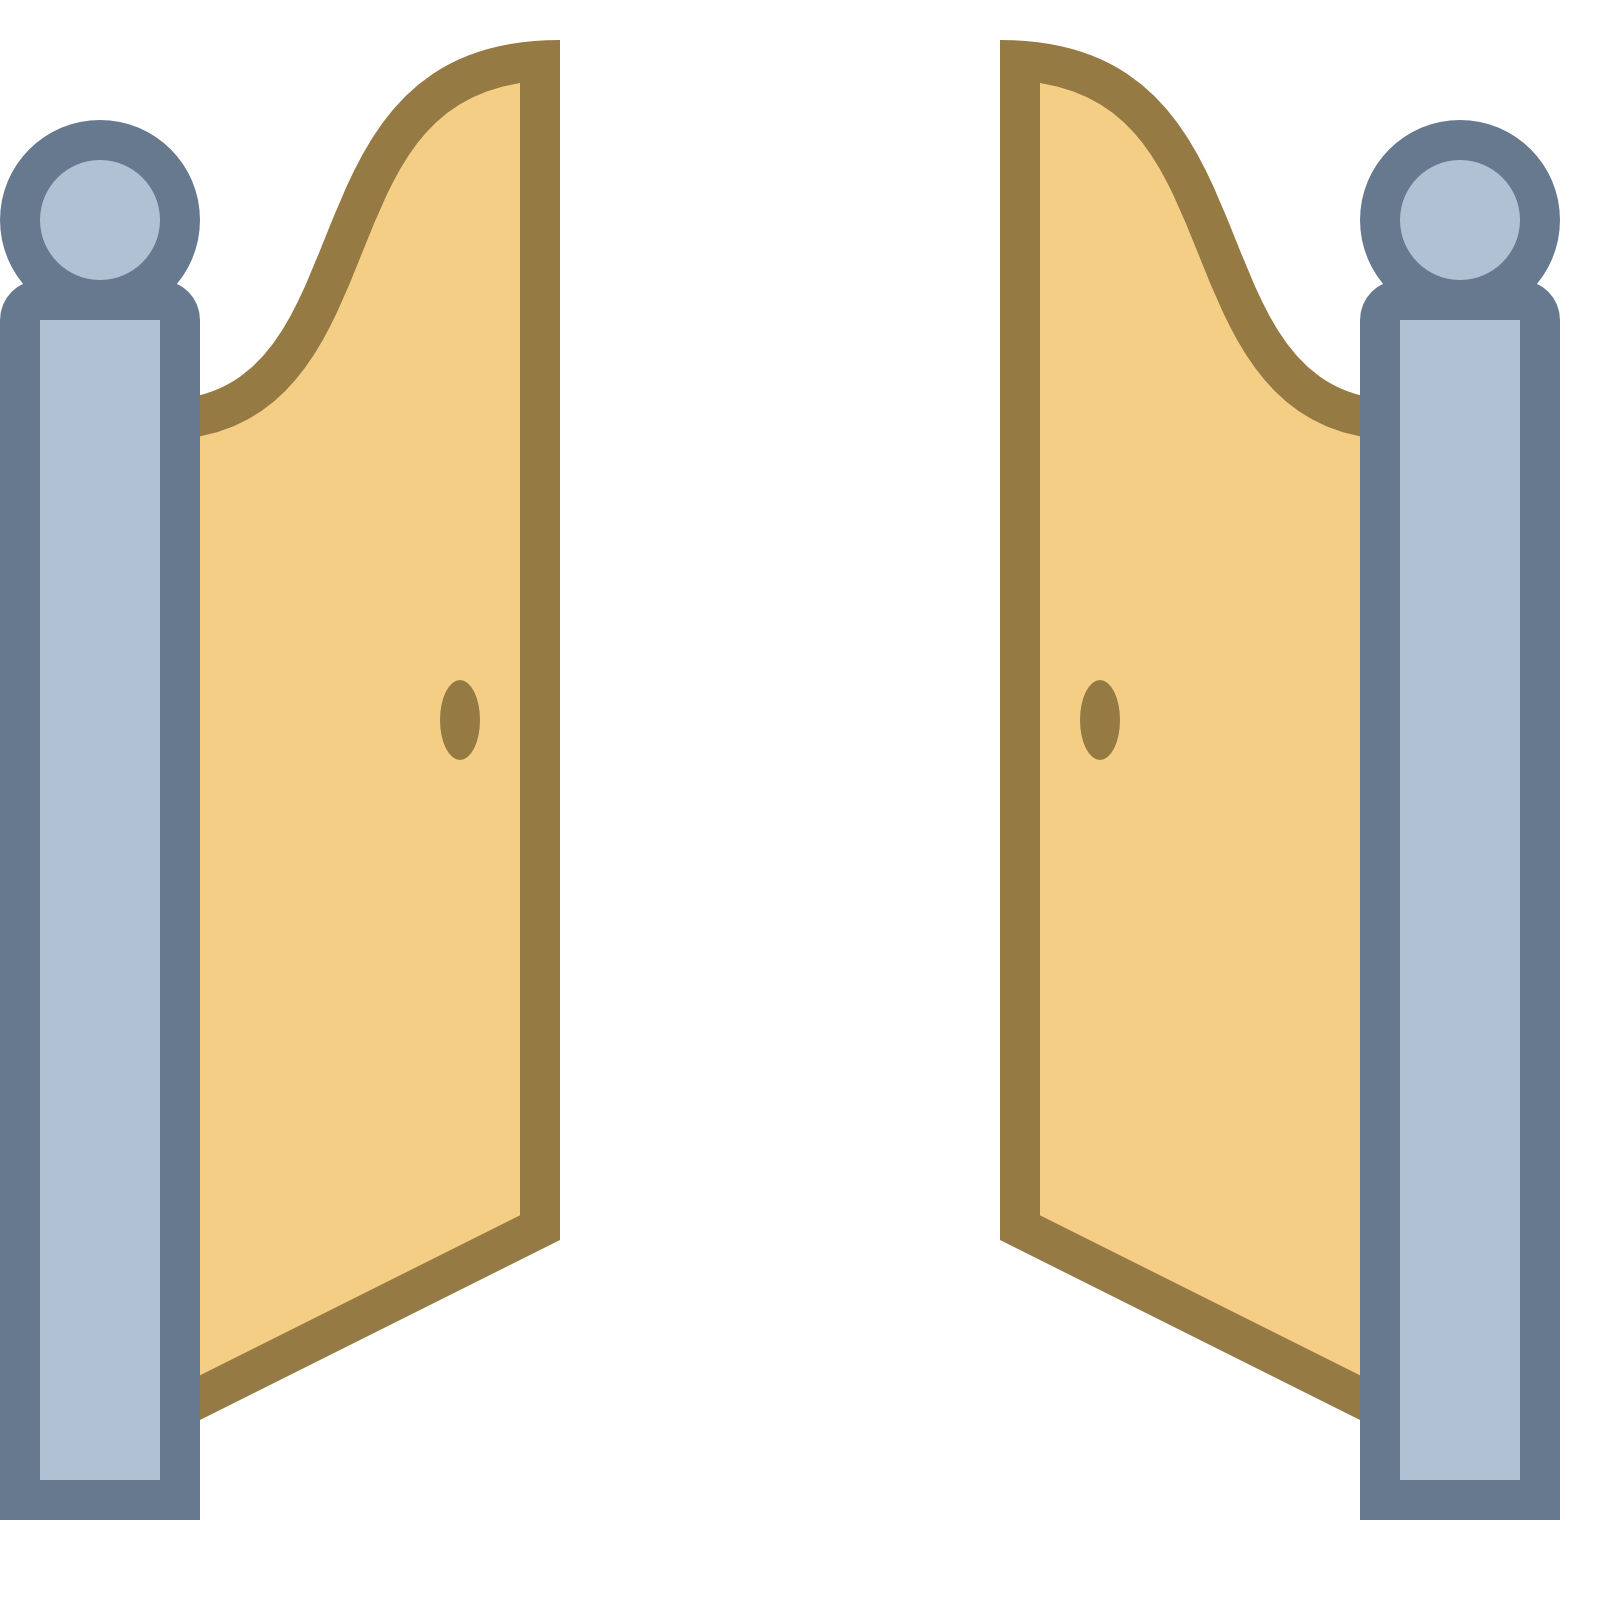 Door open png. Gate transparent images pluspng